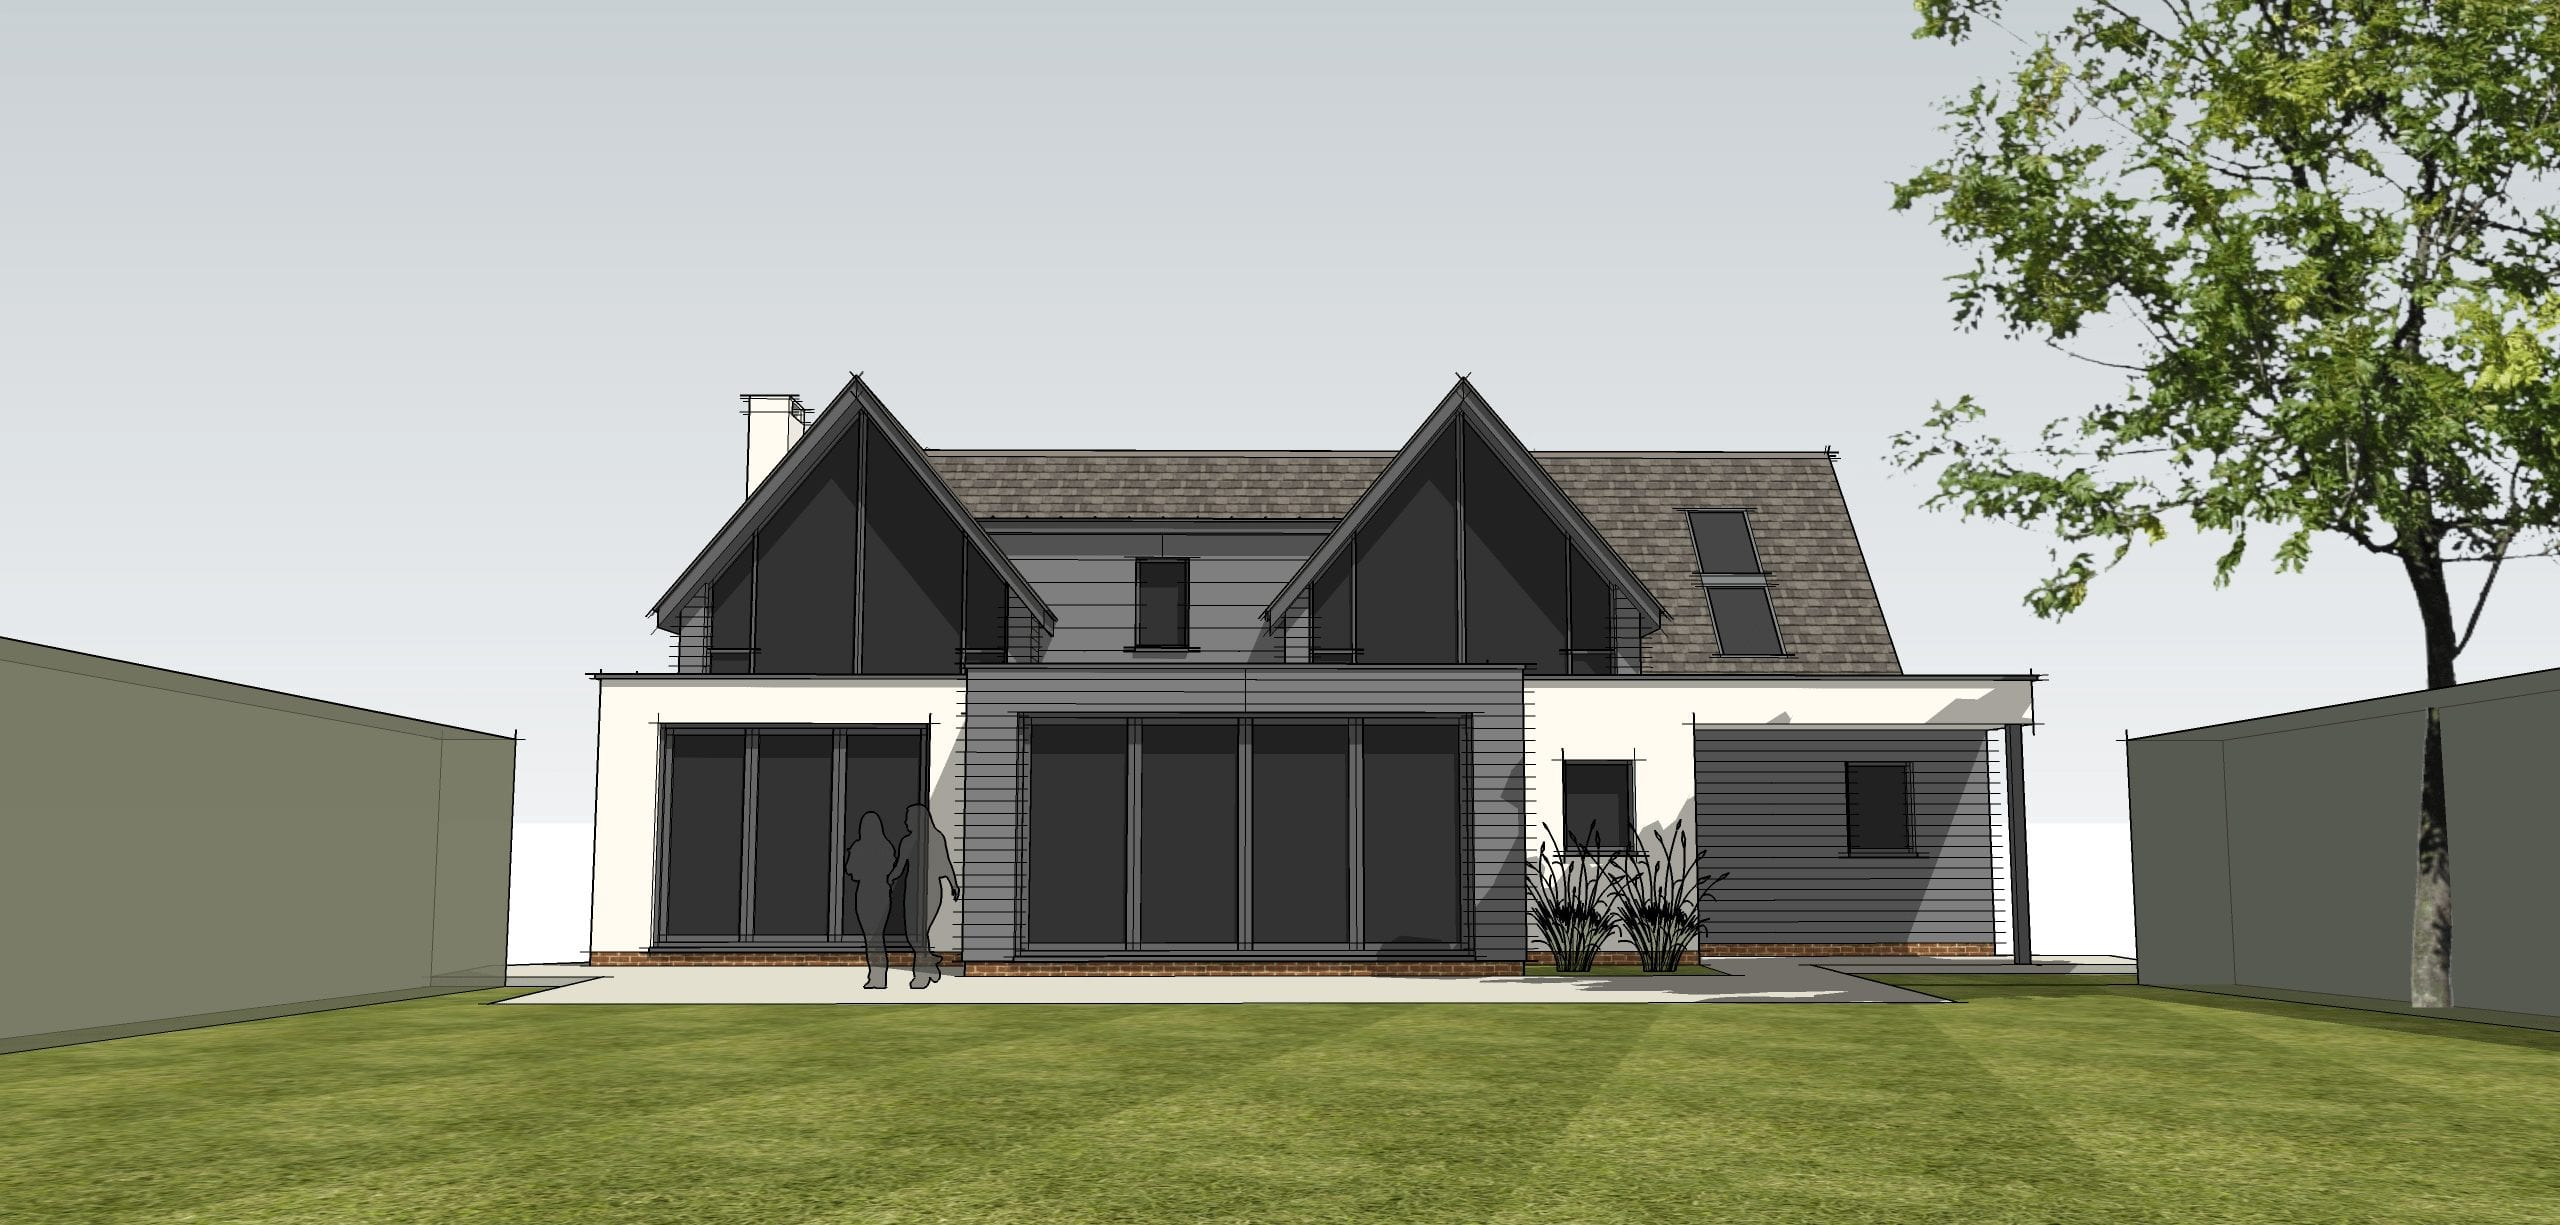 Planning consent for house remodelling in Northamptonshire…